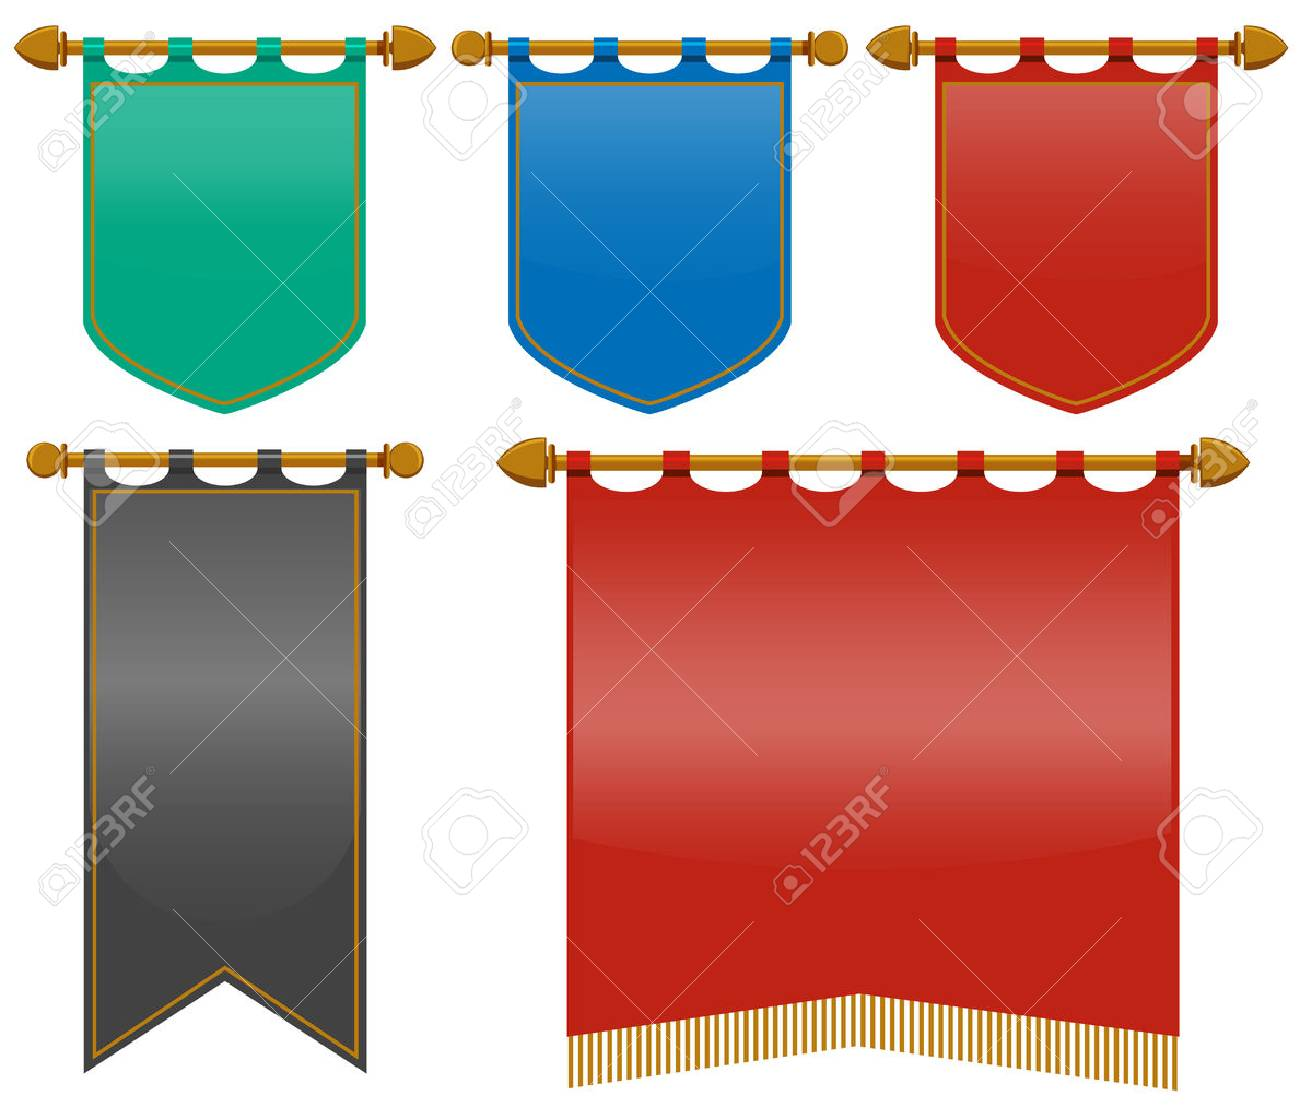 medieval flags in different